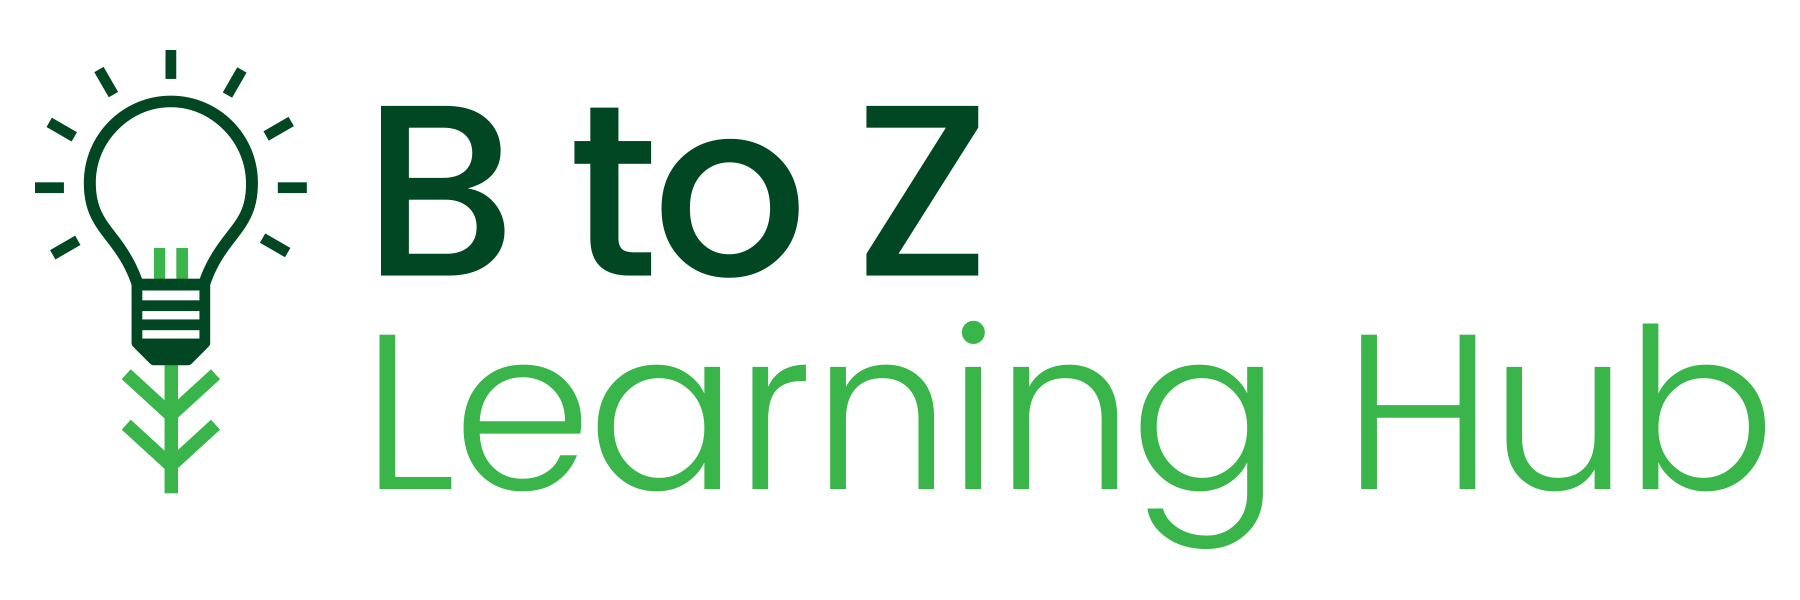 B to Z Learning Hub logo